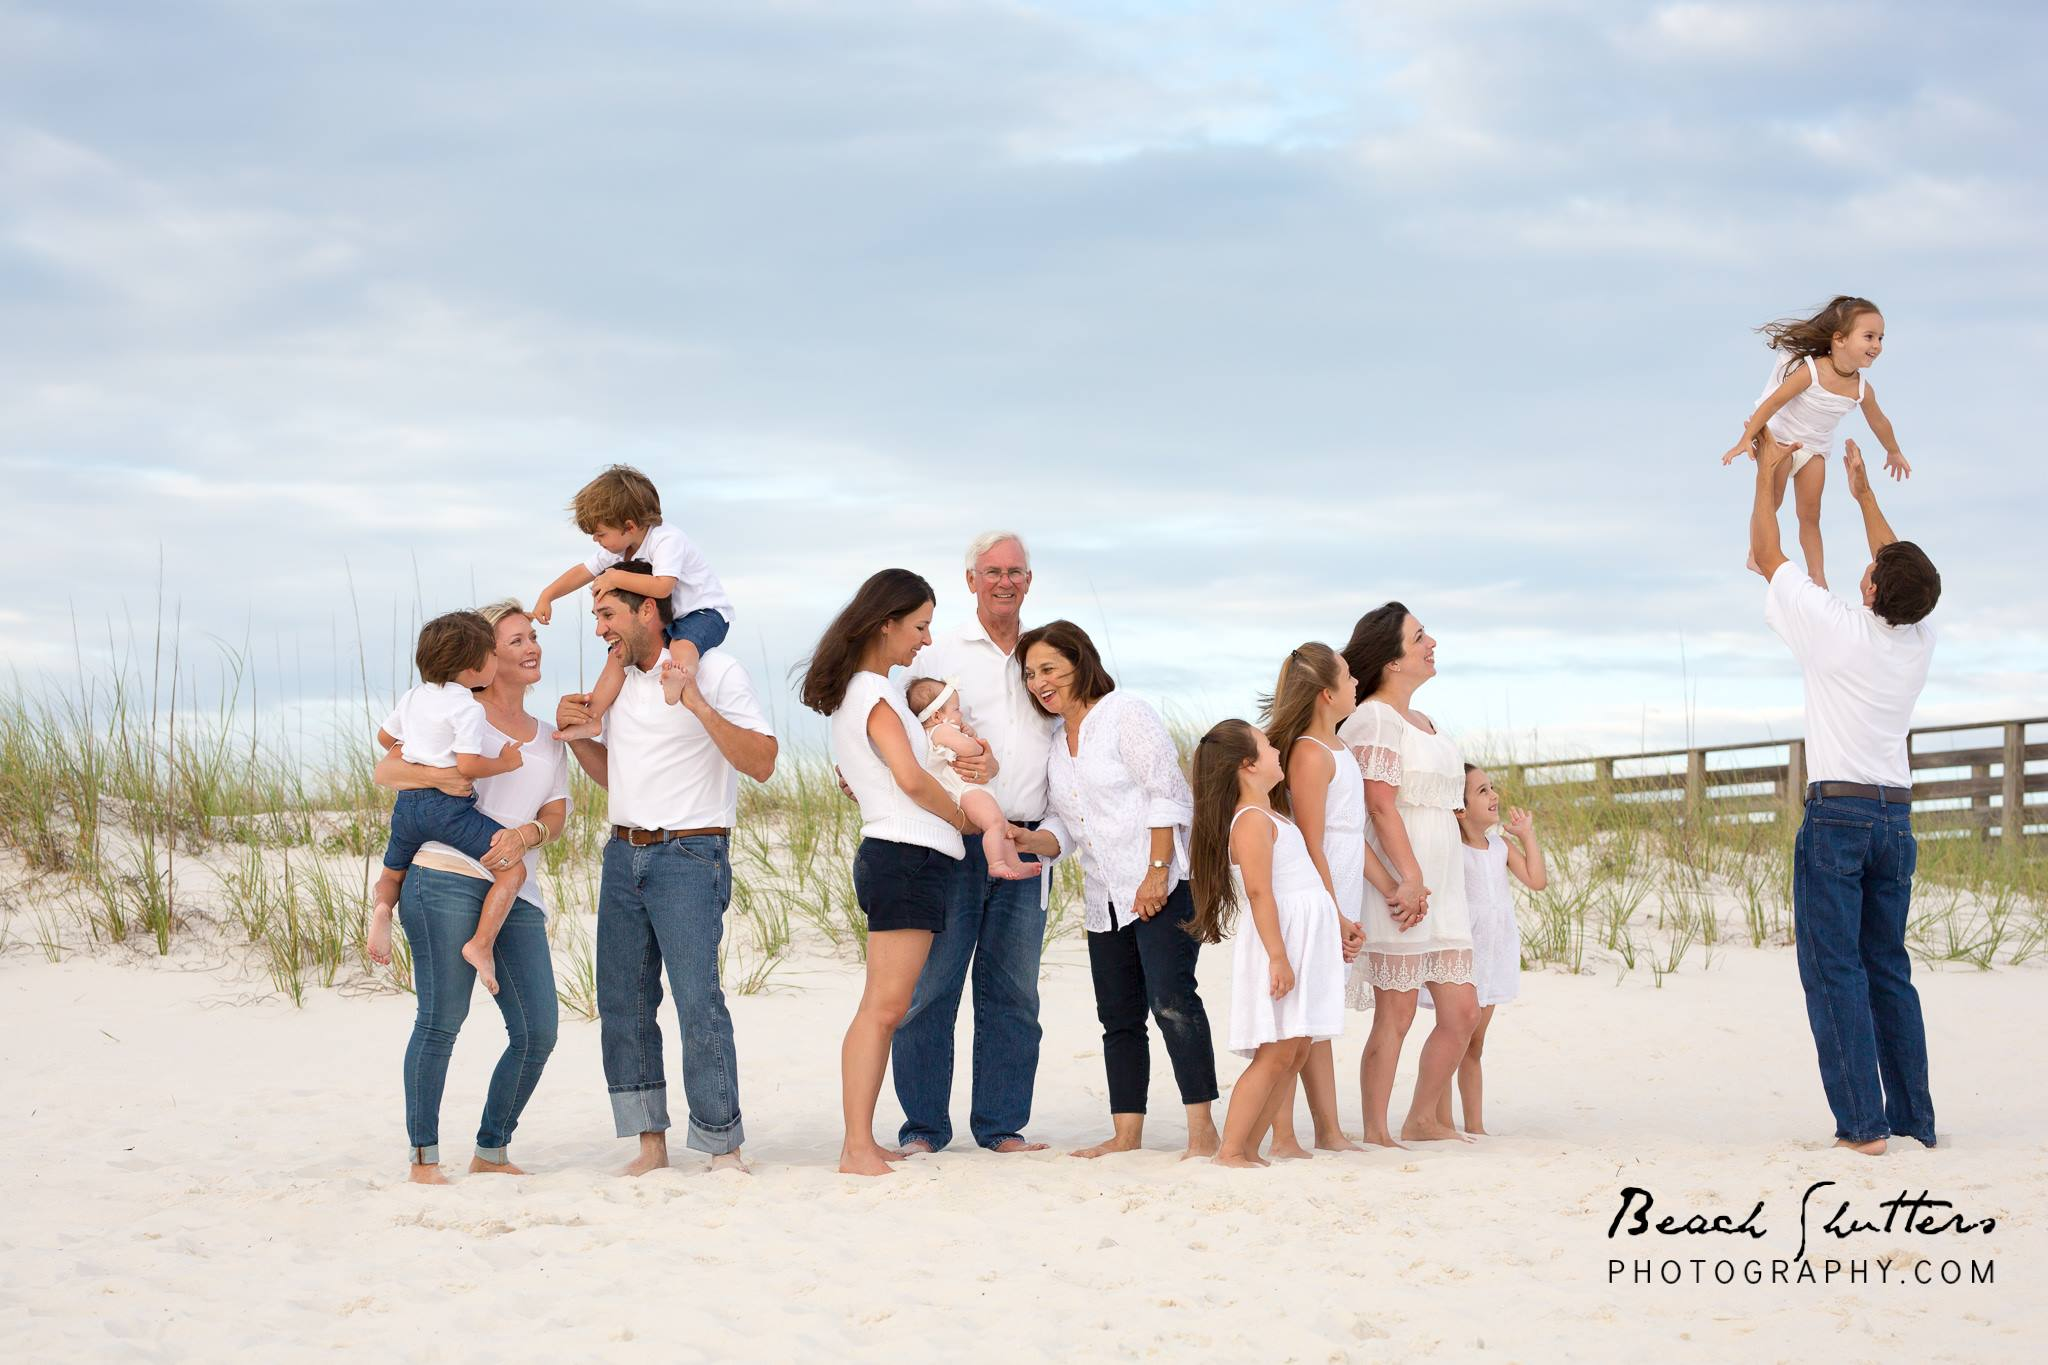 things to do in Orange Beach call Beach Shutters Photography